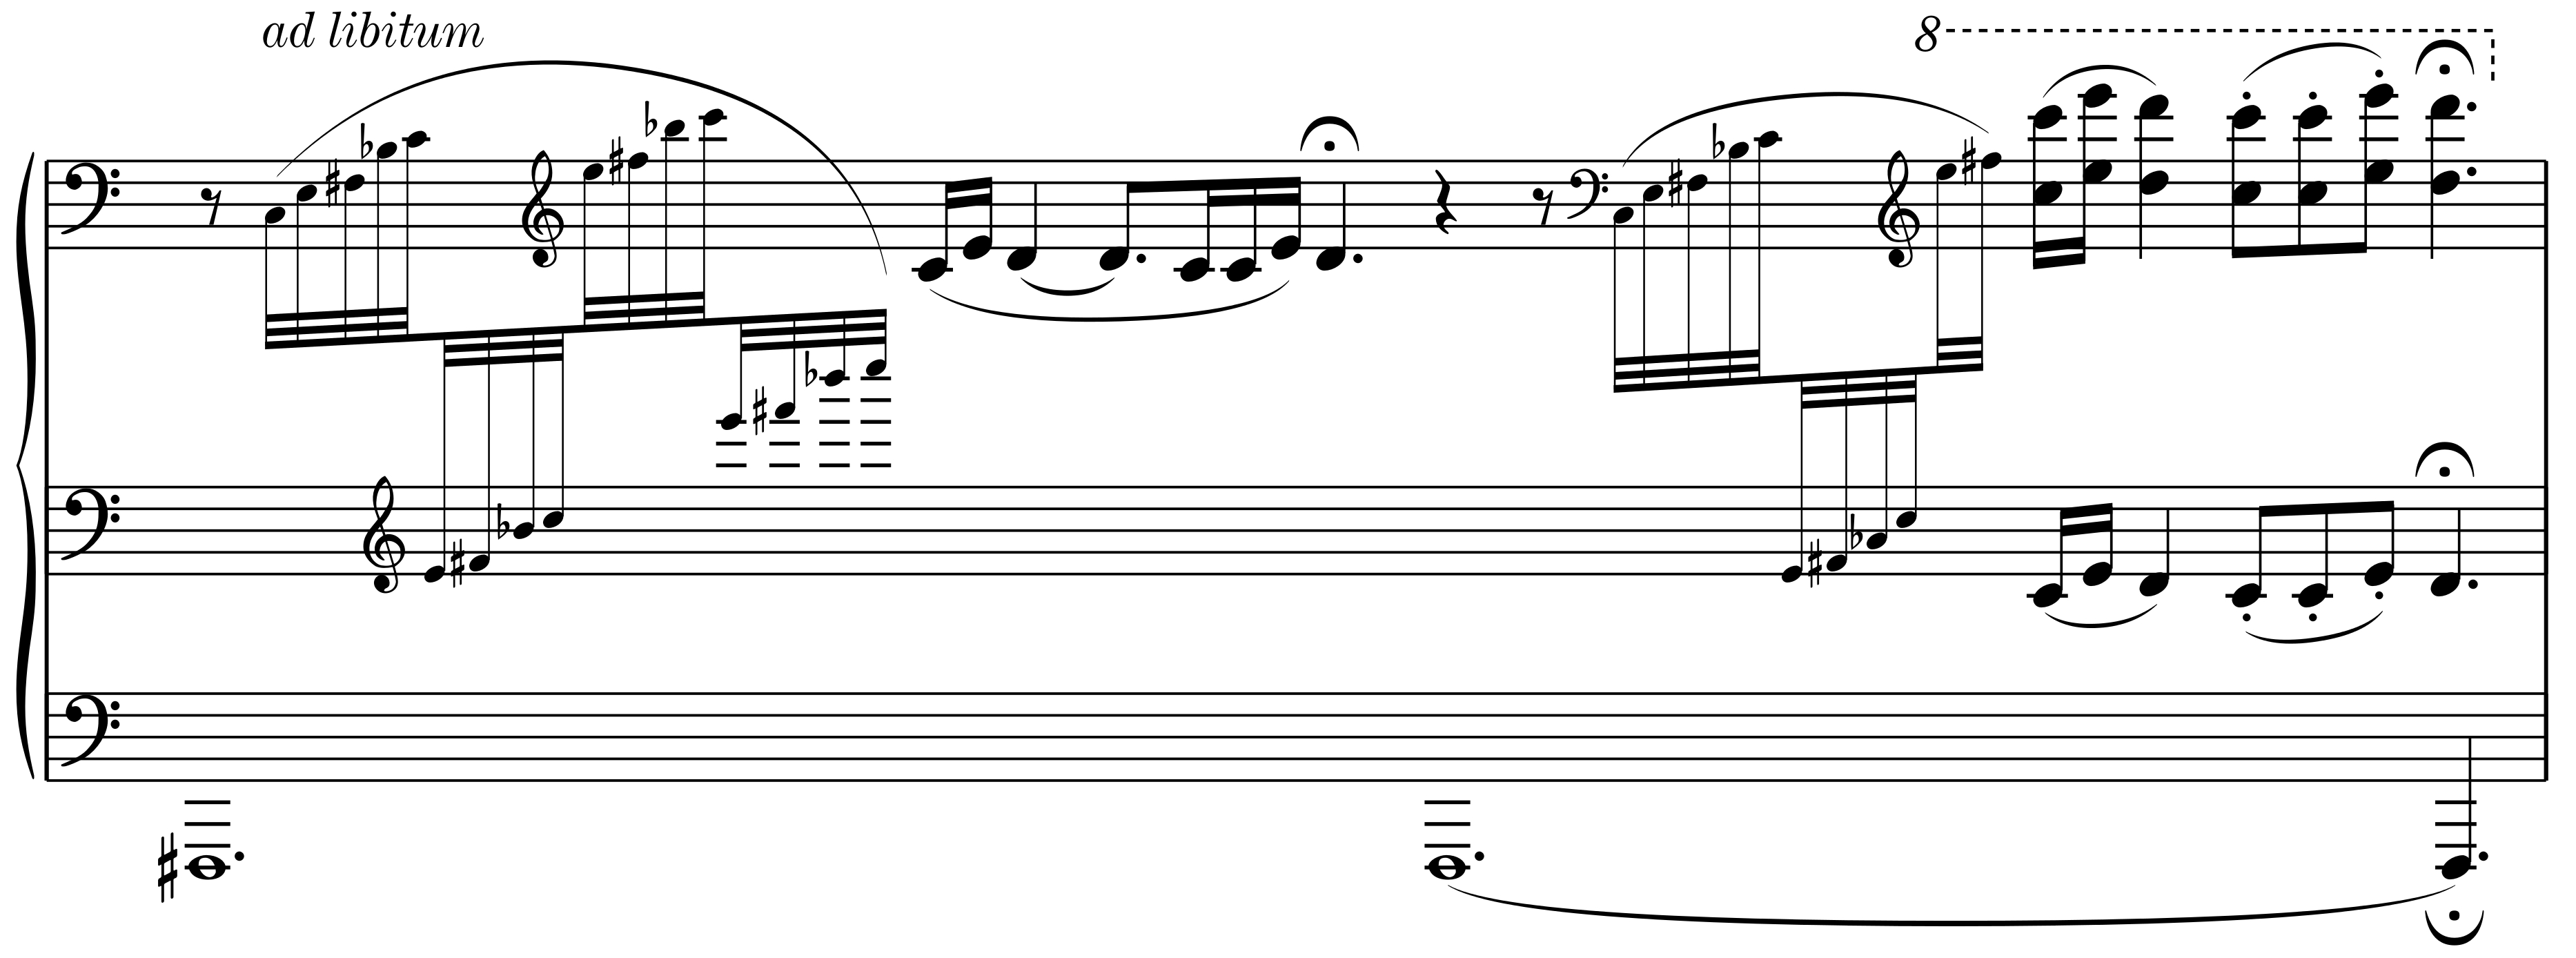 Debussy in Urtext – Part 3: Debussy's recordings of his